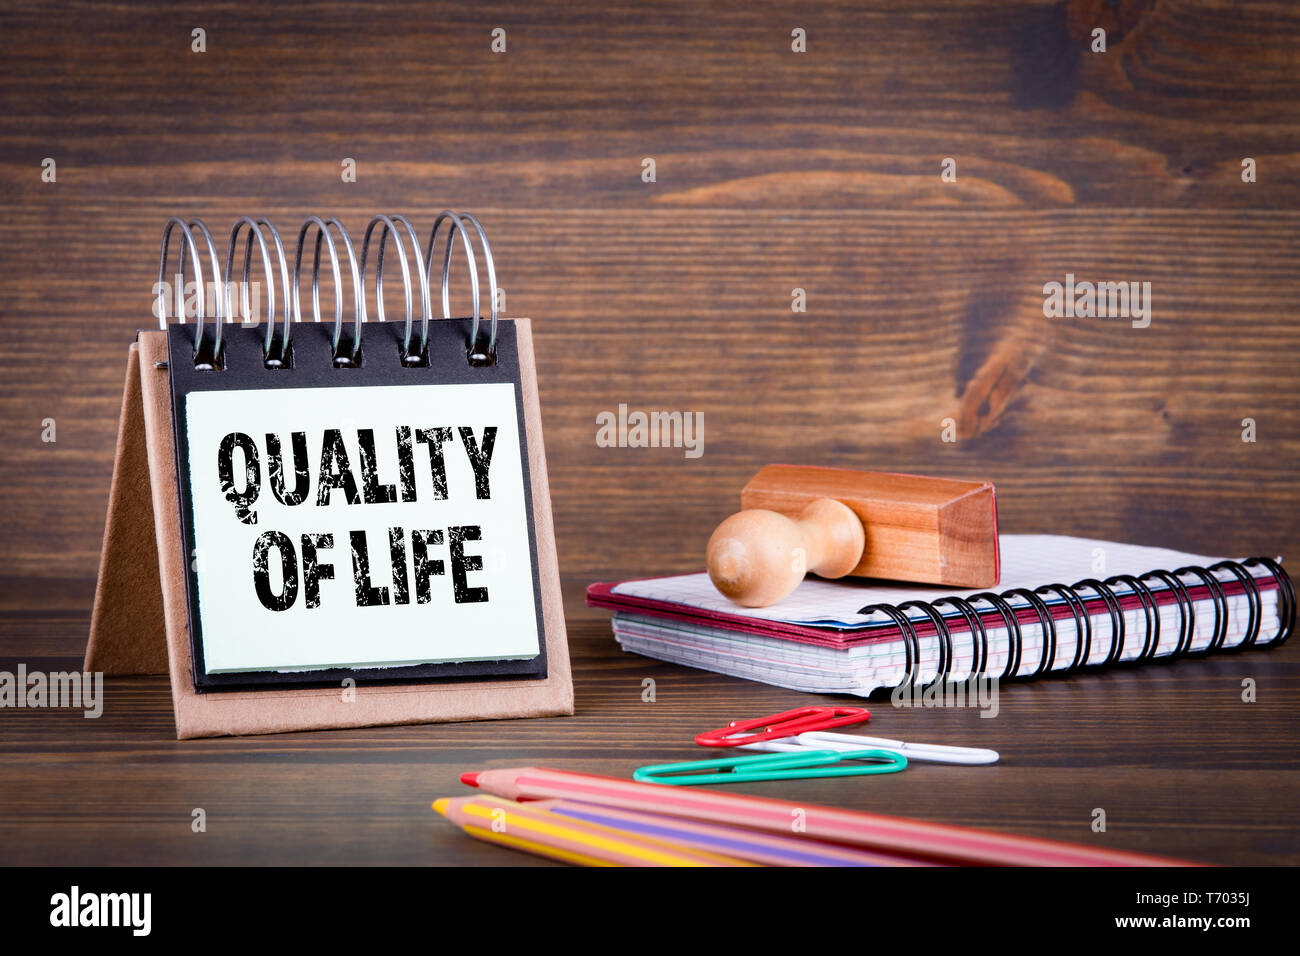 Quality Of Life. Business, profit, career or education background - Stock Image